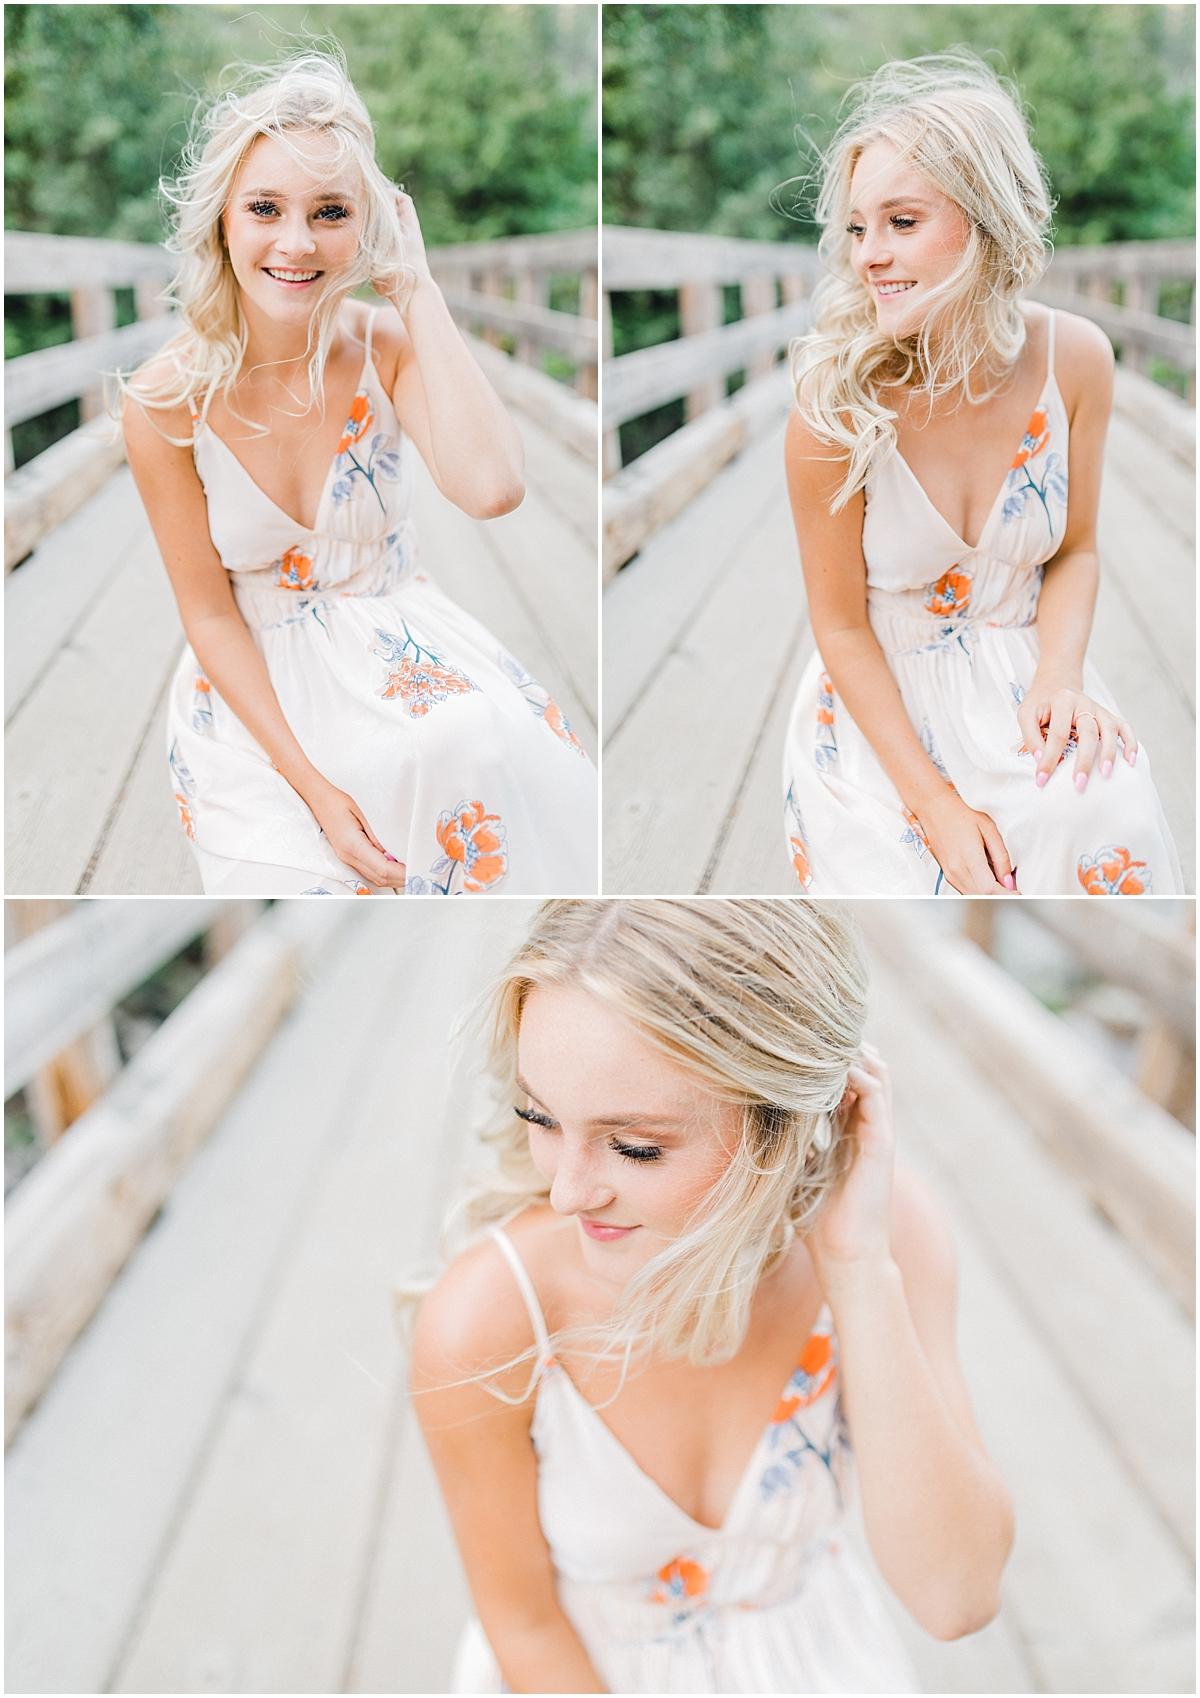 Emma Rose Company | Pacific Northwest Senior Portrait Photographer | Light and Airy Styled Senior Portraits | What to Wear to Senior Pictures | Kindred Presets | Seattle, Wenatchee and Portland Wedding and Portrait Photographer | Emma Rose3.jpg